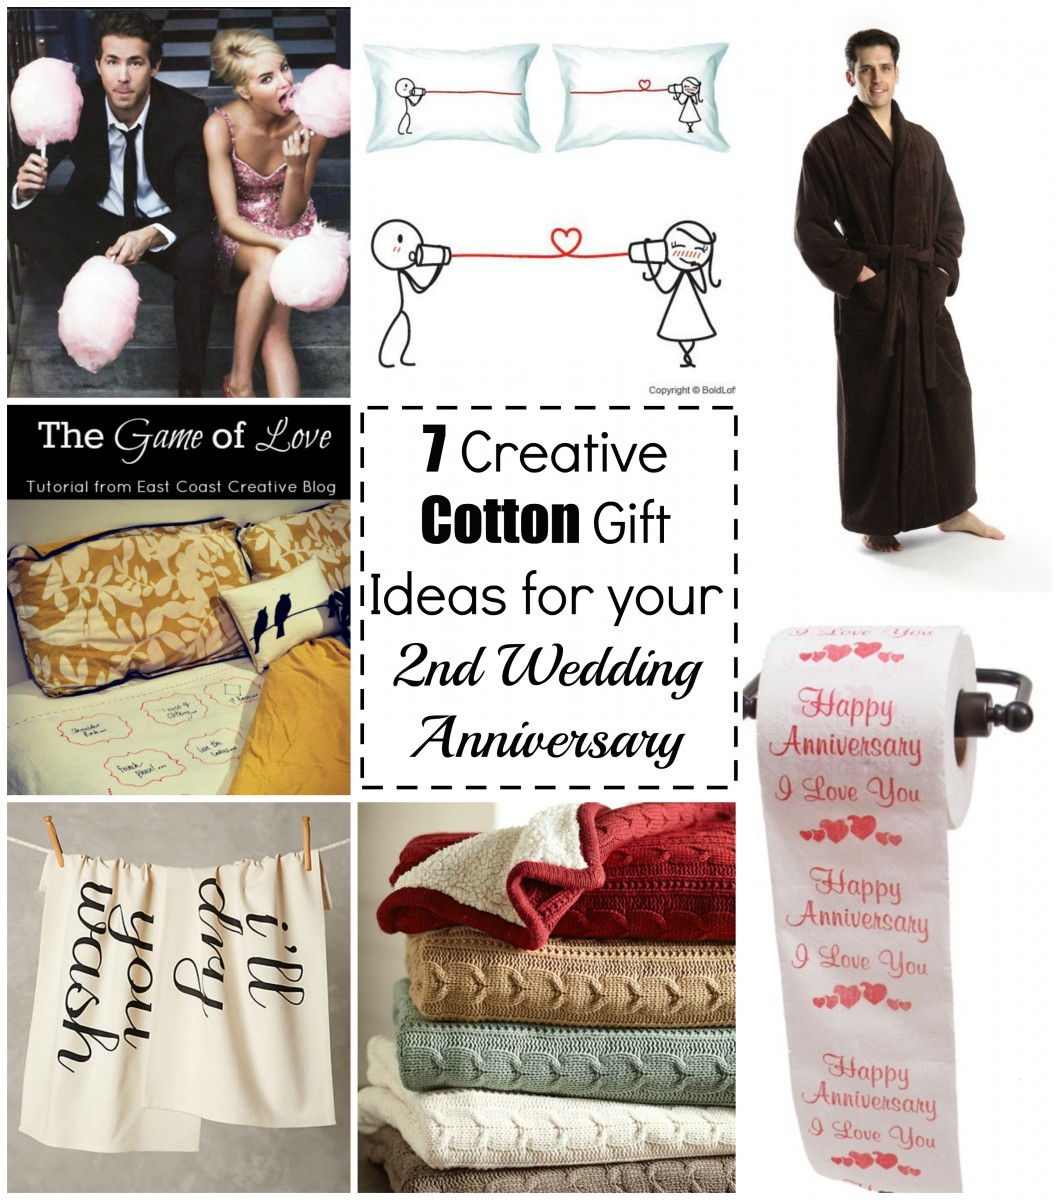 Best Anniversary Gift For Wedding: 7 Cotton Gift Ideas For Your 2nd Wedding Anniversary